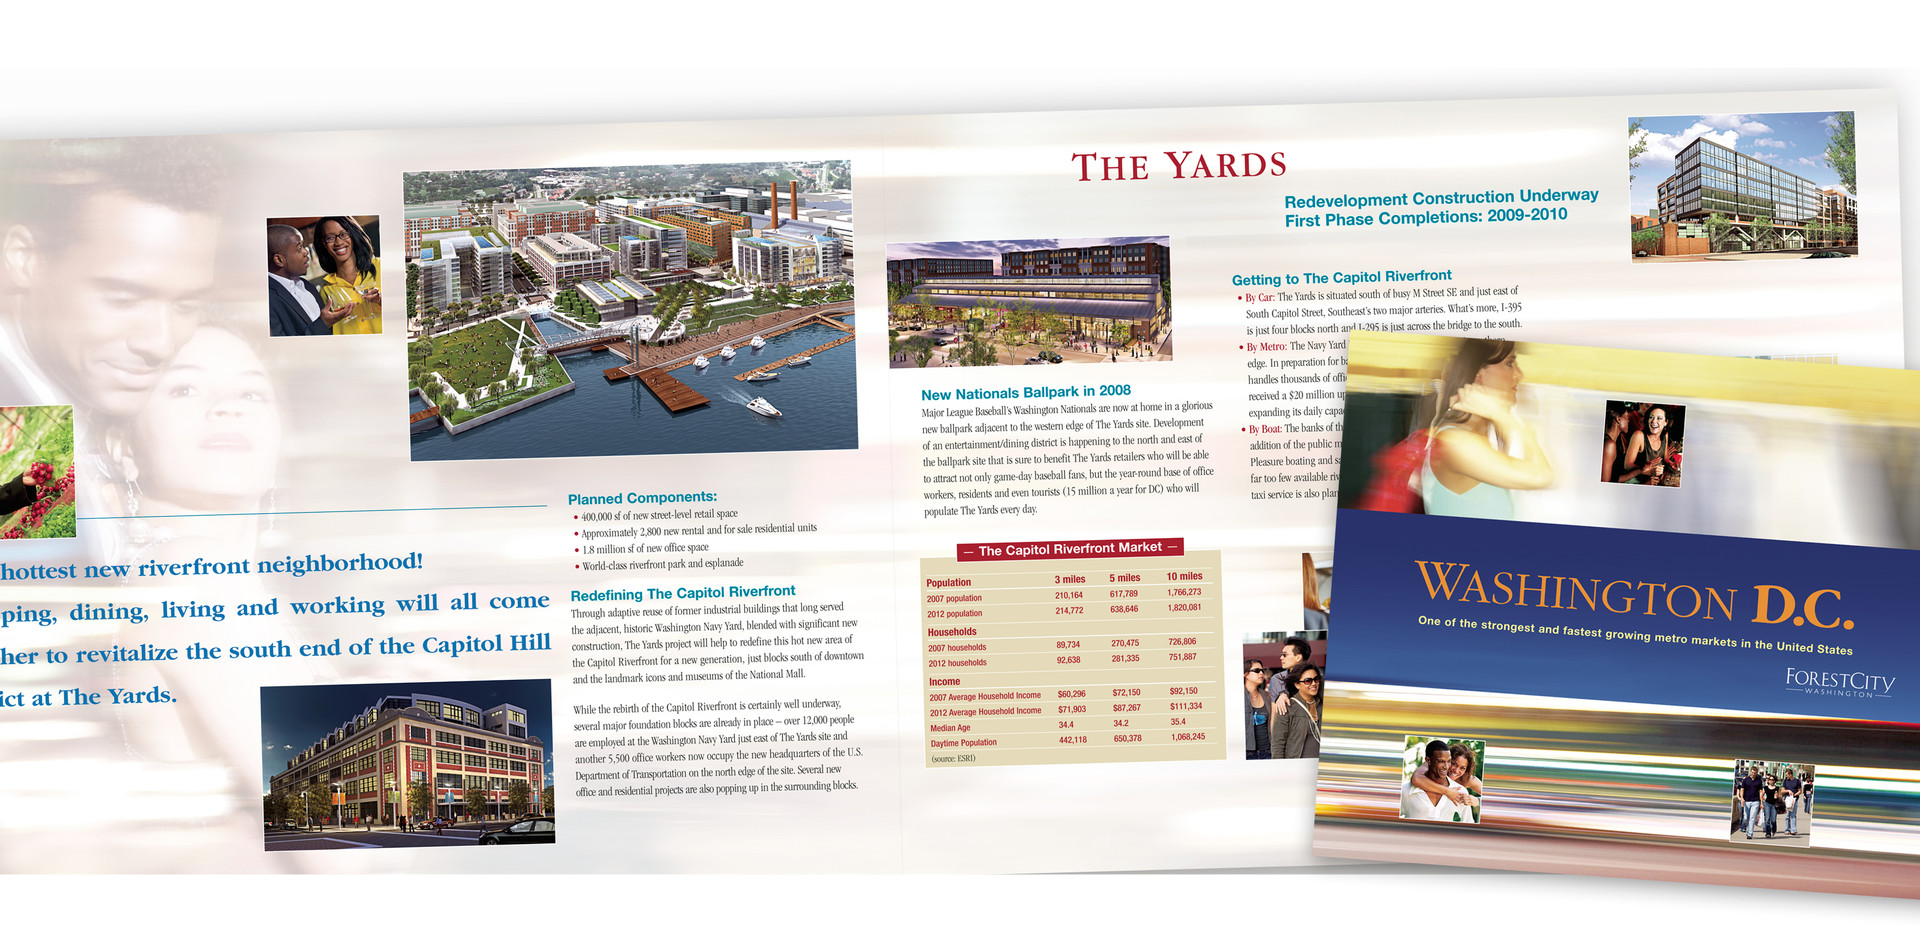 FCorest City Washington Brochure